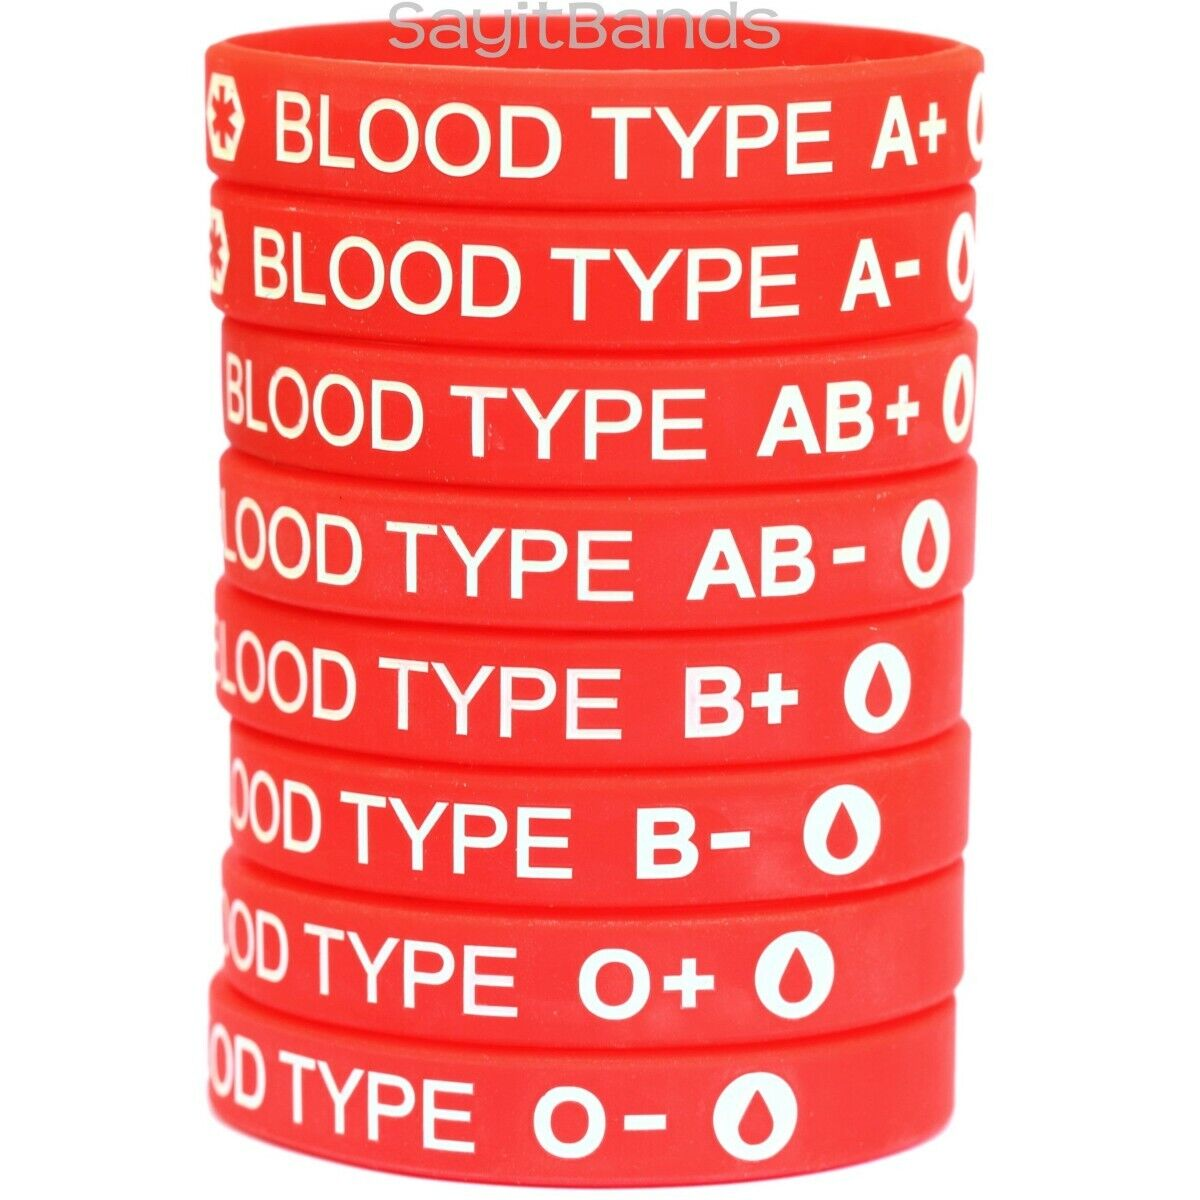 как выглядит 1 Blood Type Silicone Wristband Bracelet - Pick from A A- B B- AB AB- O O- фото